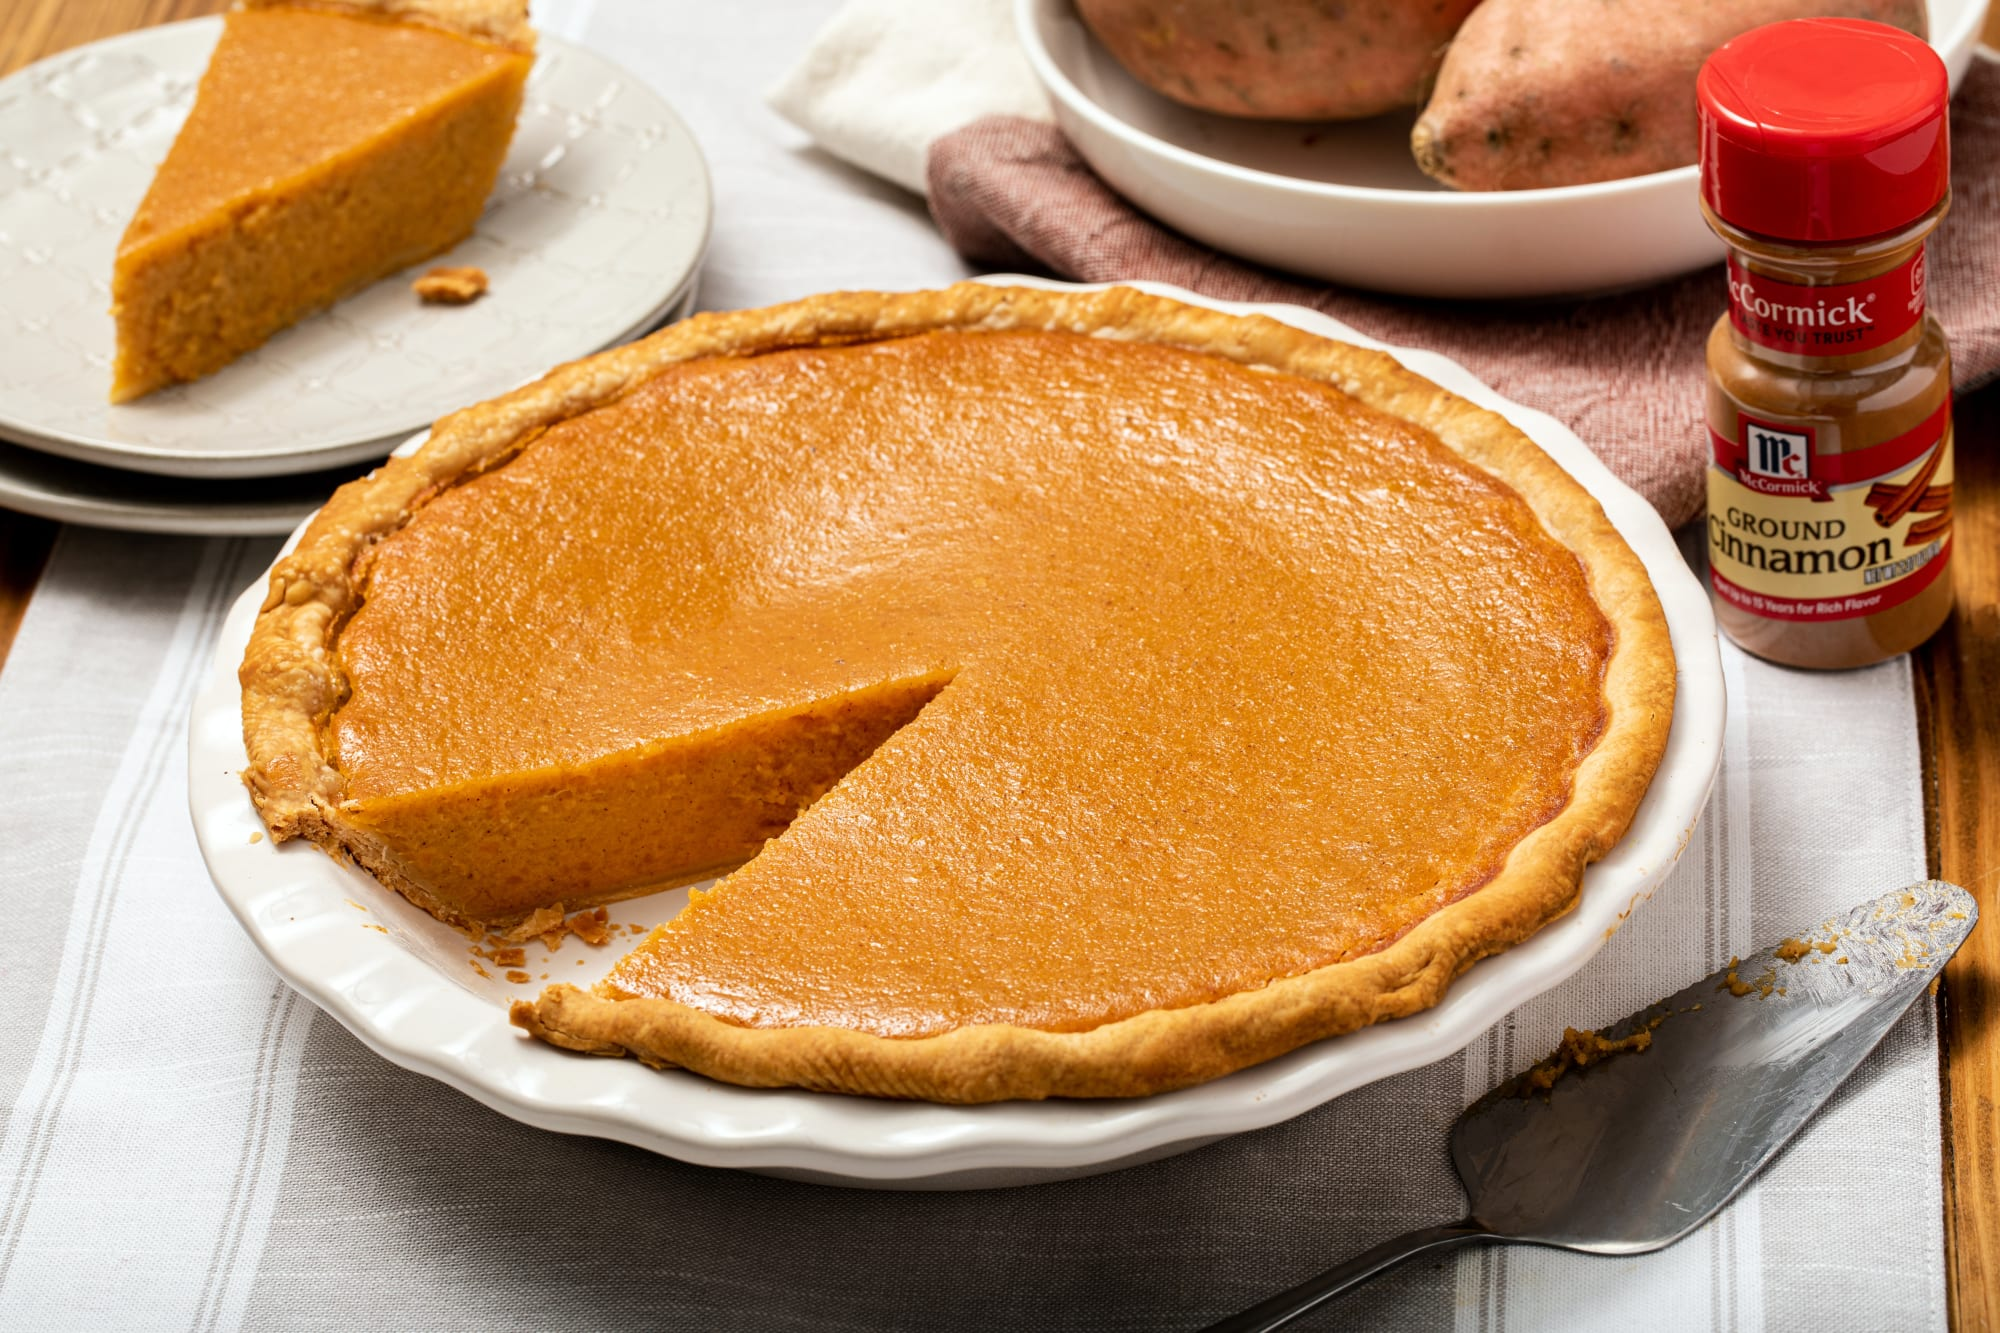 Anthony Anderson shares the secret to his tasty sweet potato pie recipe